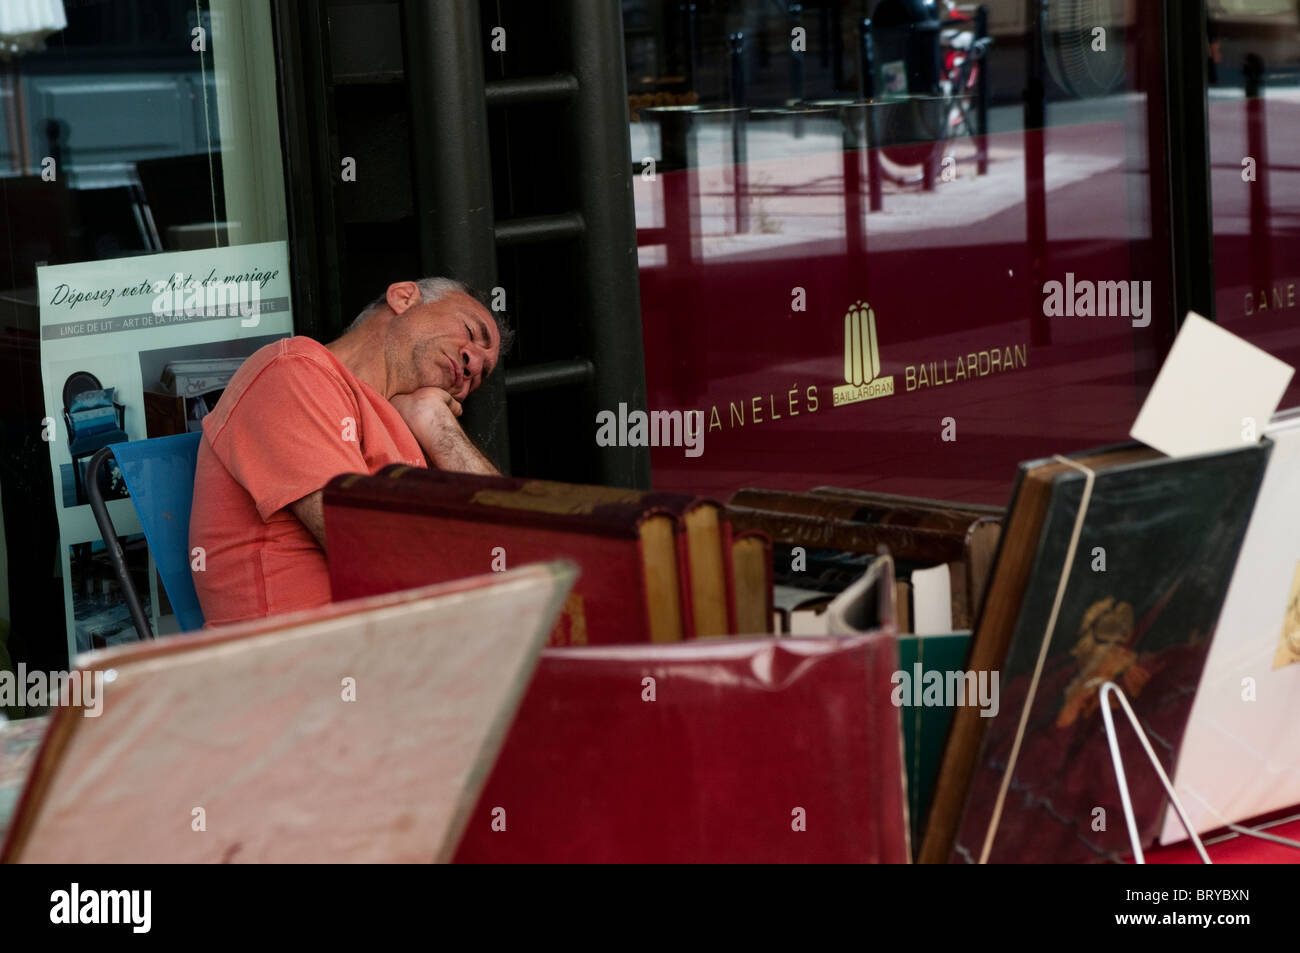 Bookseller sleeping at the Grands Hommes Shopping centre, Bordeaux, France - Stock Image